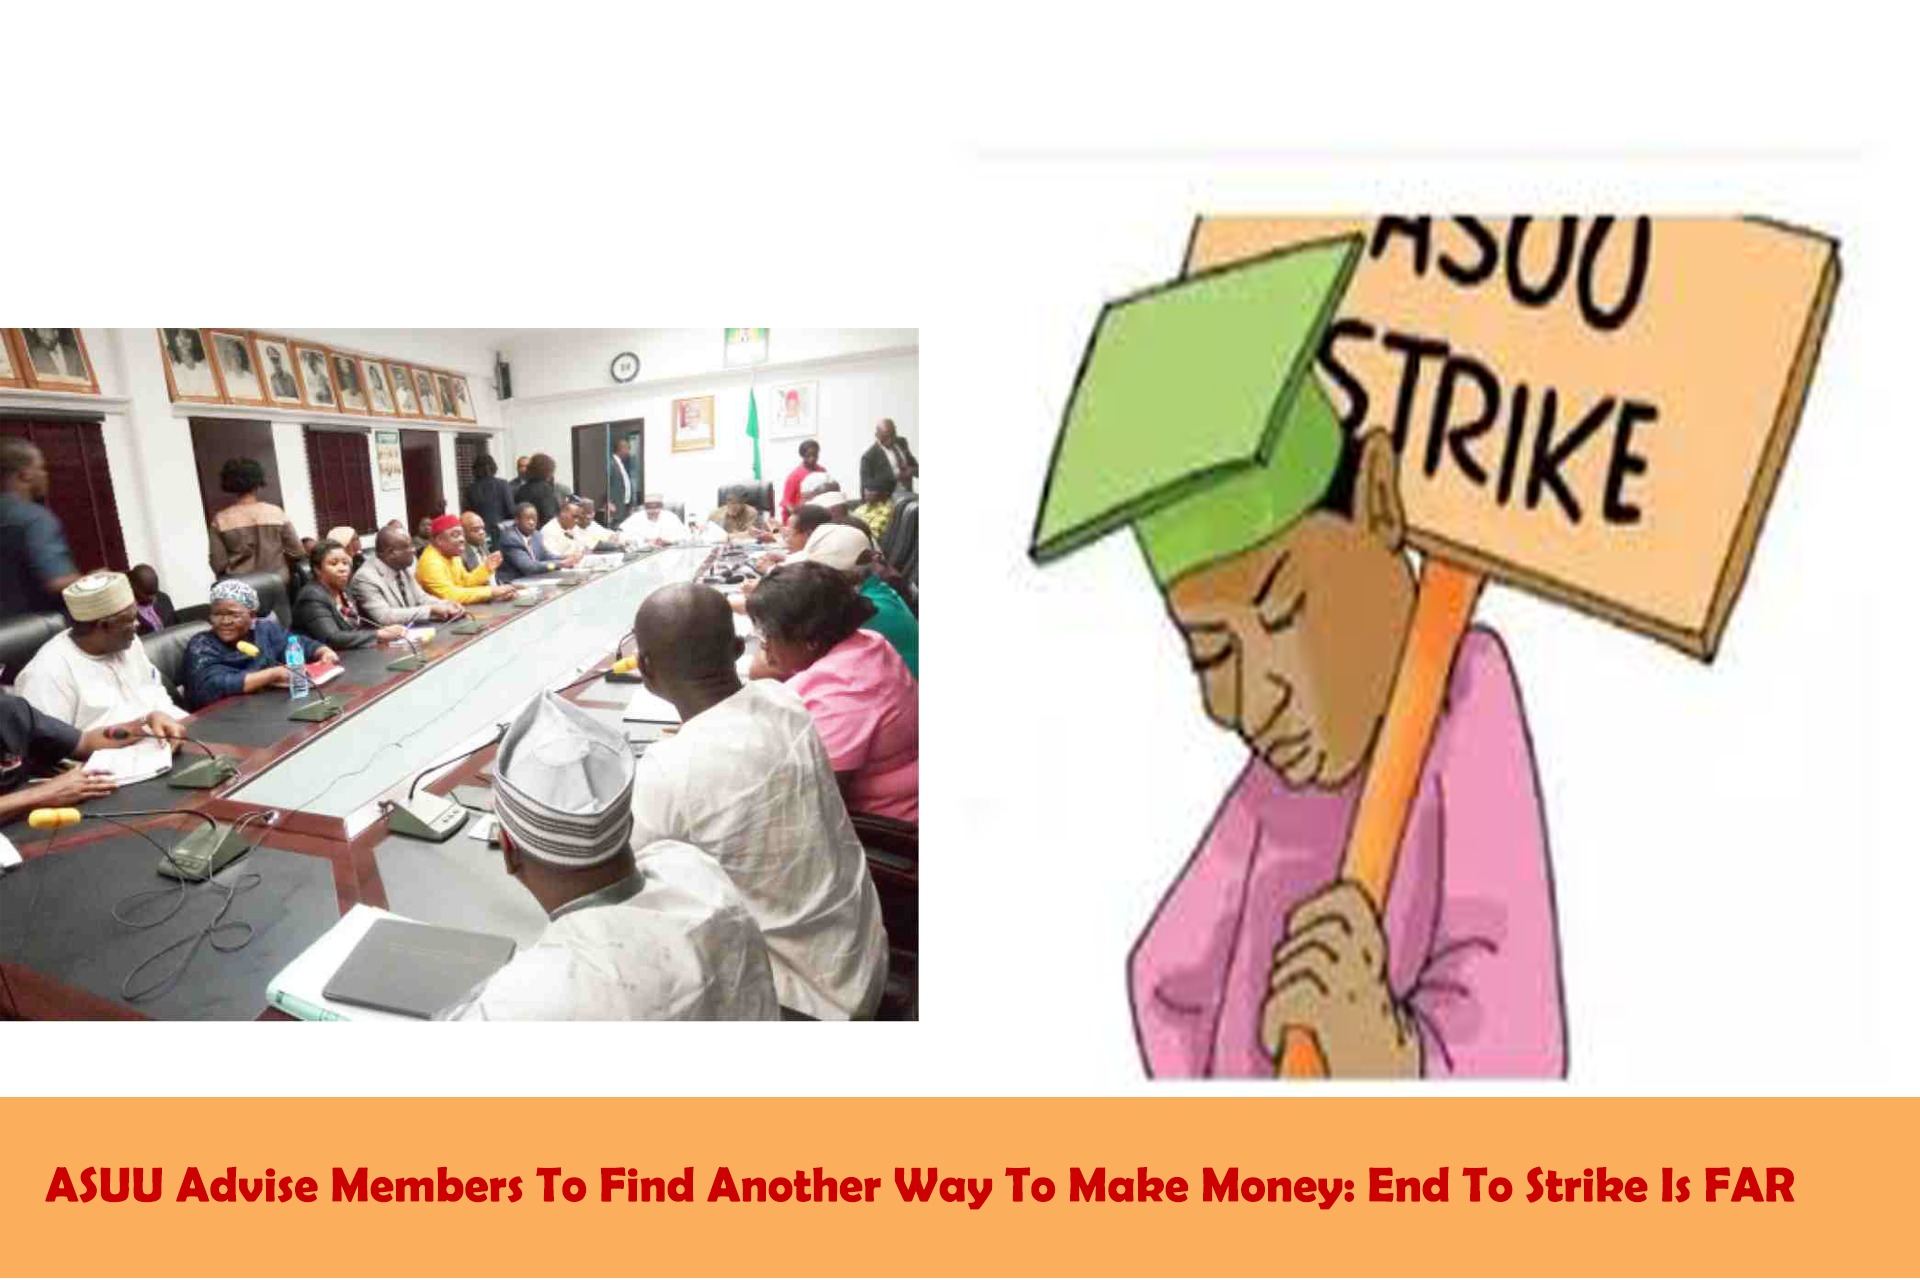 ASUU Advise Members To Find Another Way To Make Money End To Strike Is FAR